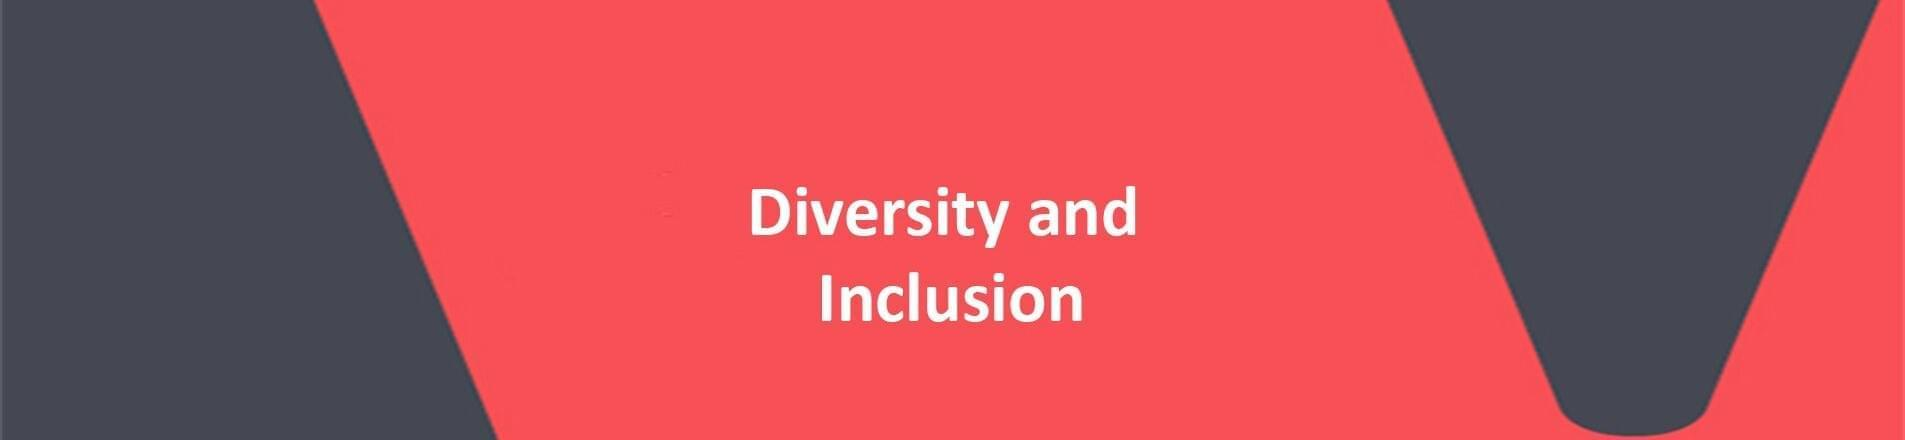 Diversity & Inclusion on red VERCIDA background